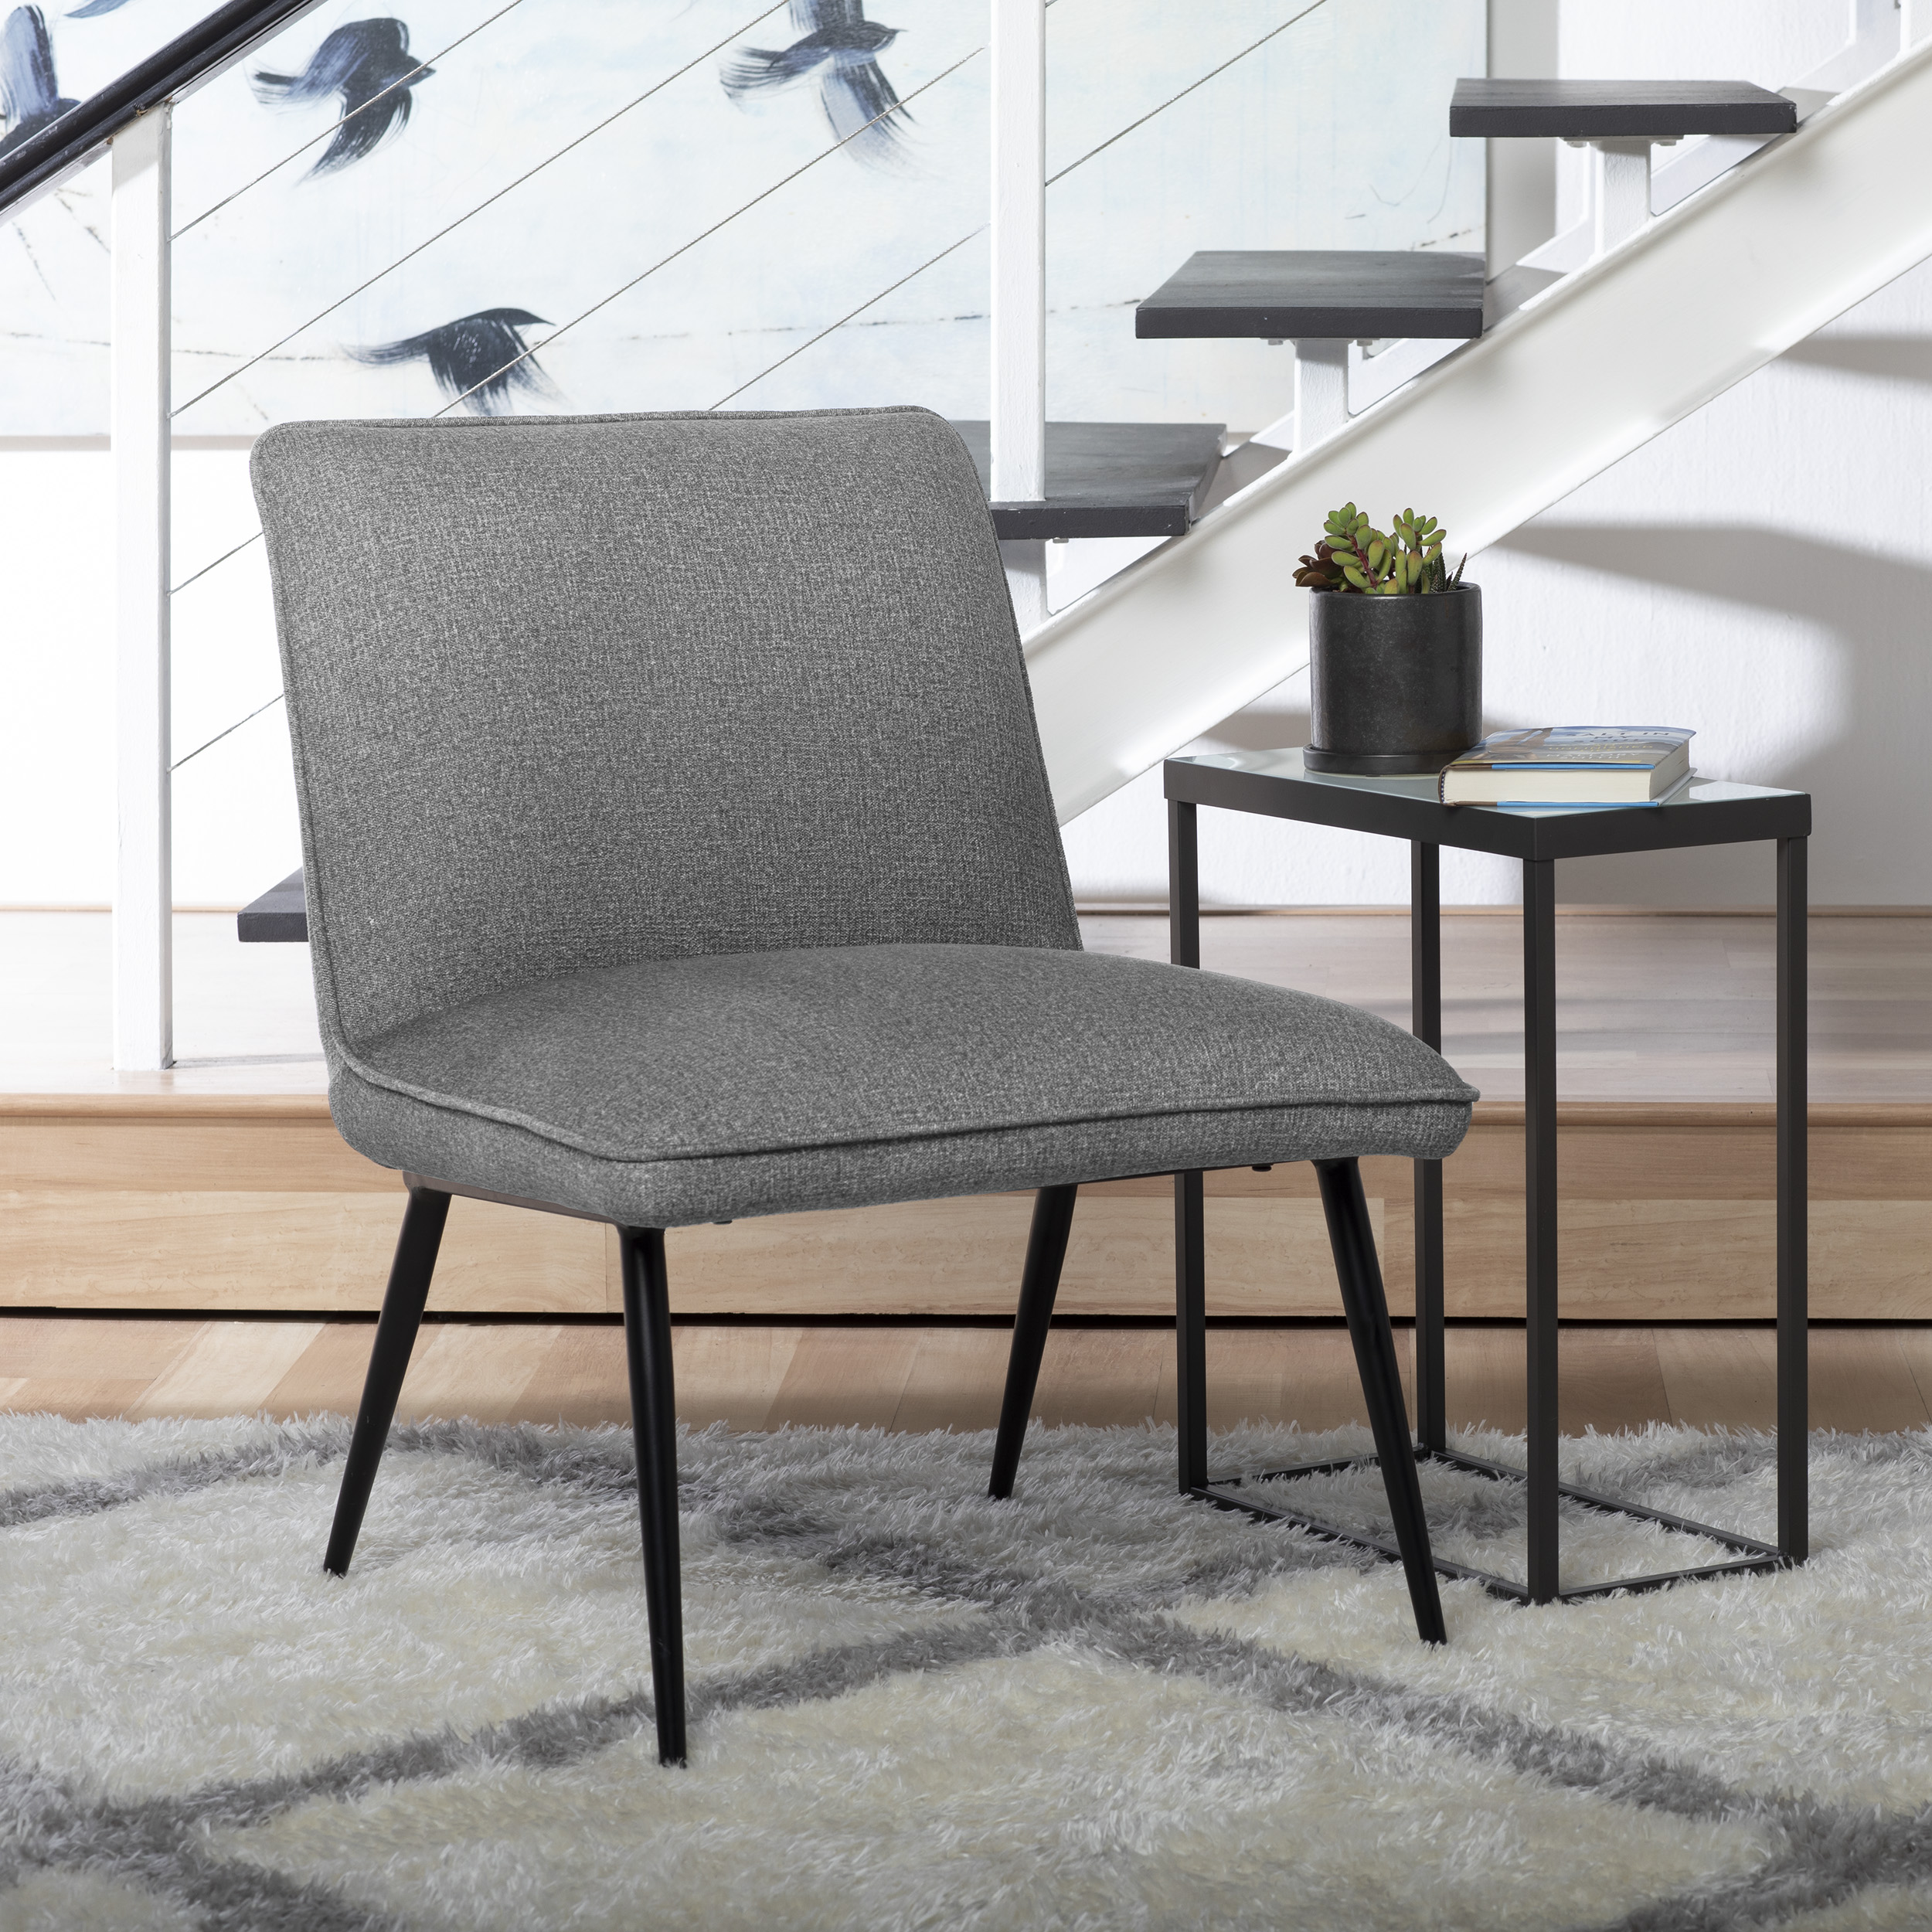 Picture of: Studio Designs Home Niche Armless Slipper Bedroom Accent Chair With Black Metal Legs And Dark Grey Fabric Walmart Com Walmart Com